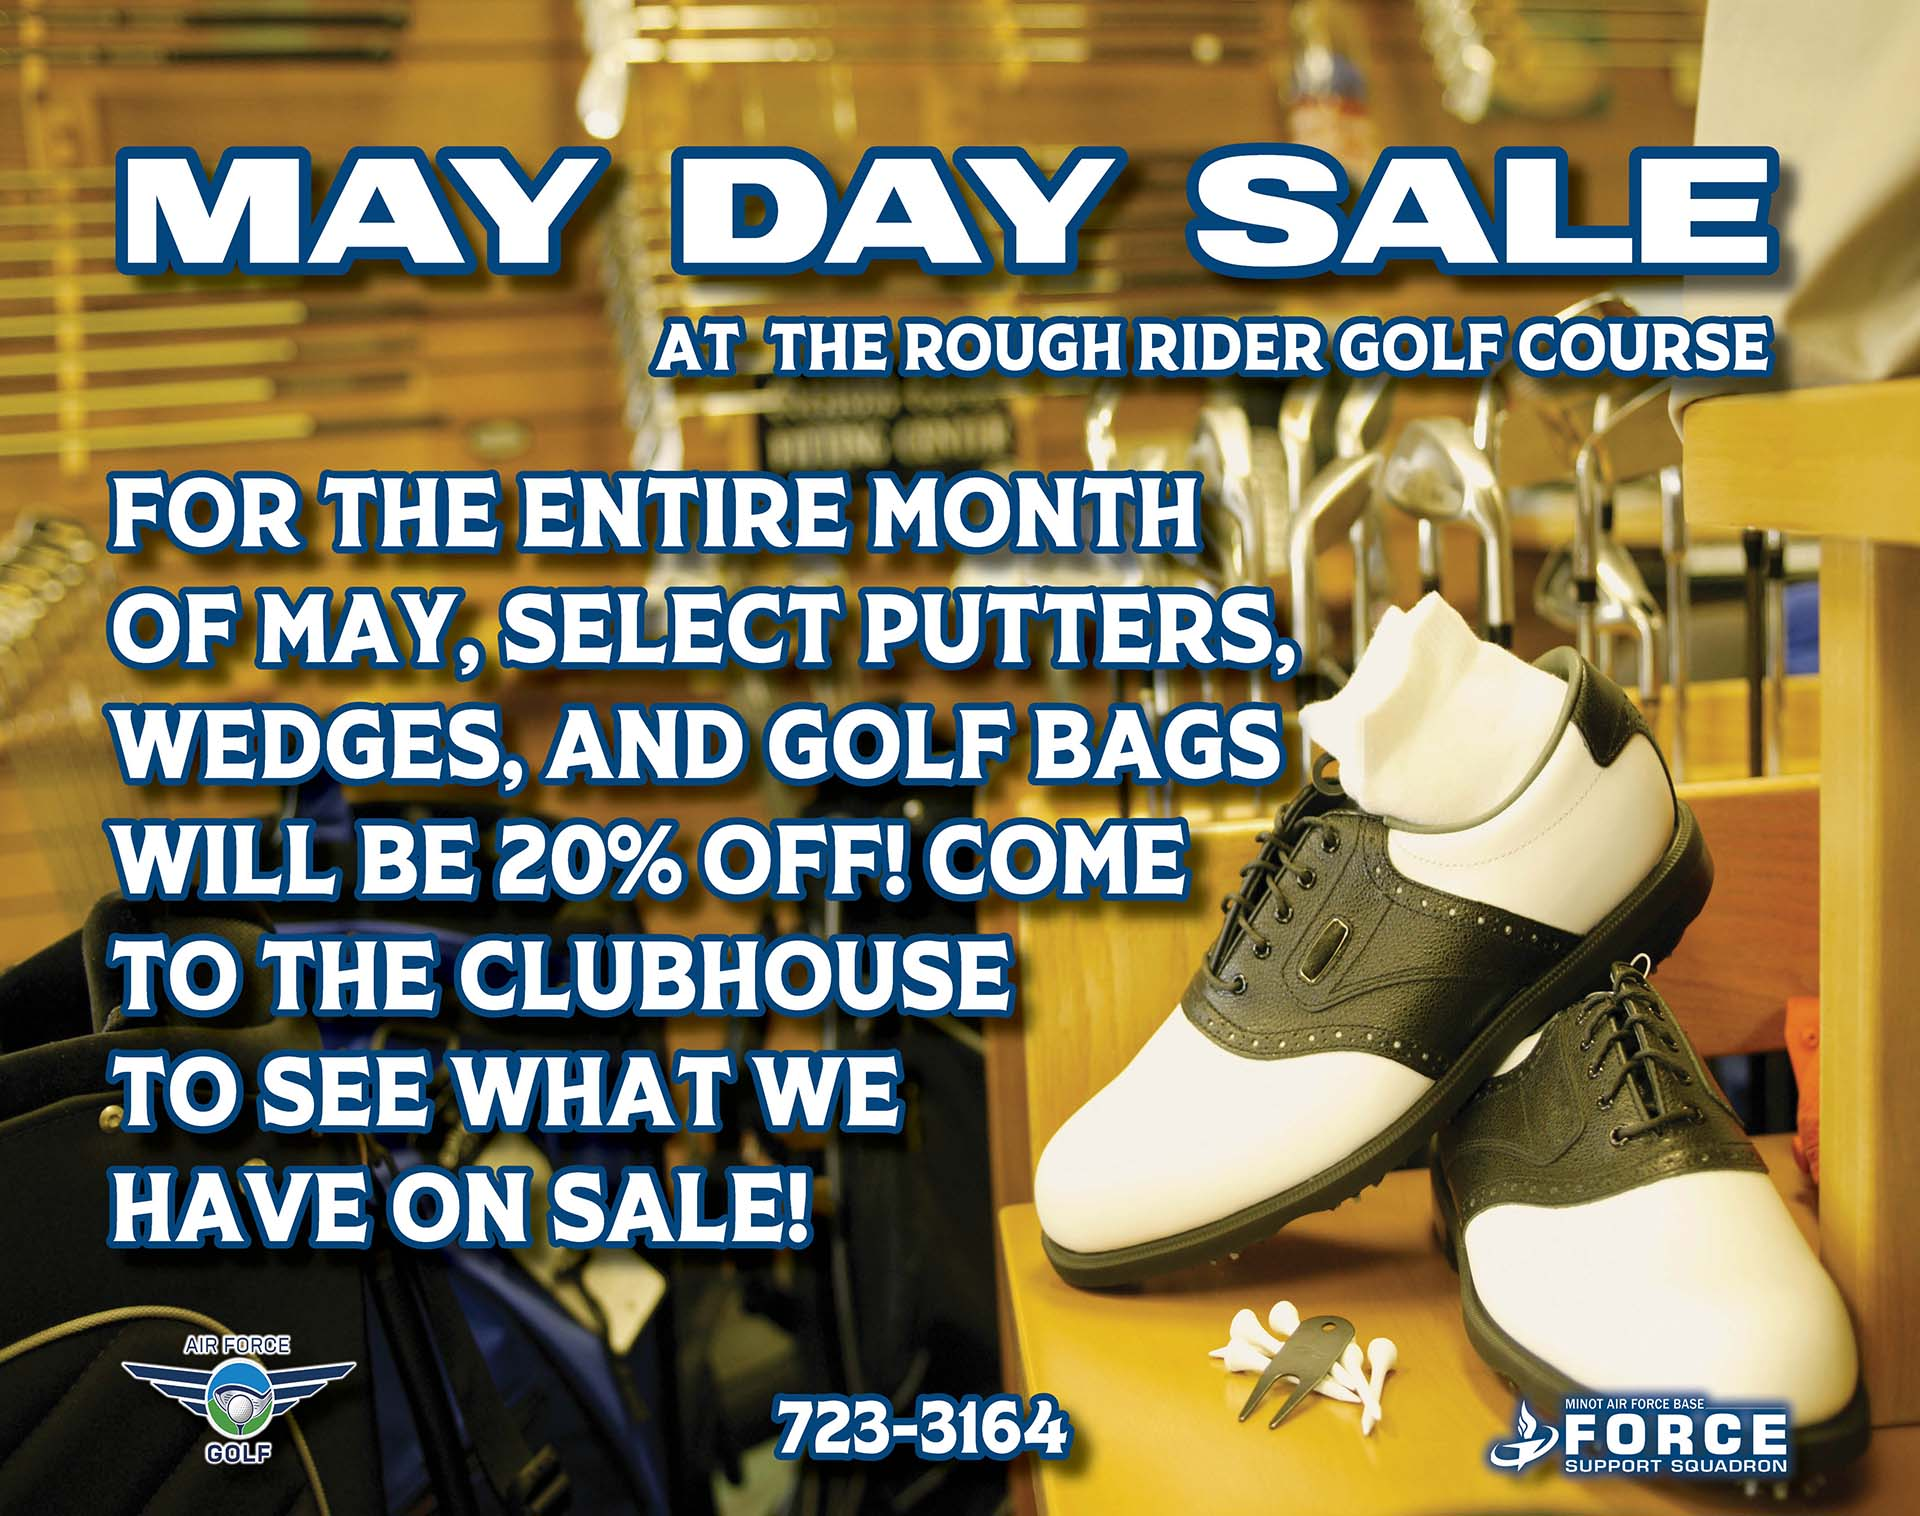 May Day Sale Begins